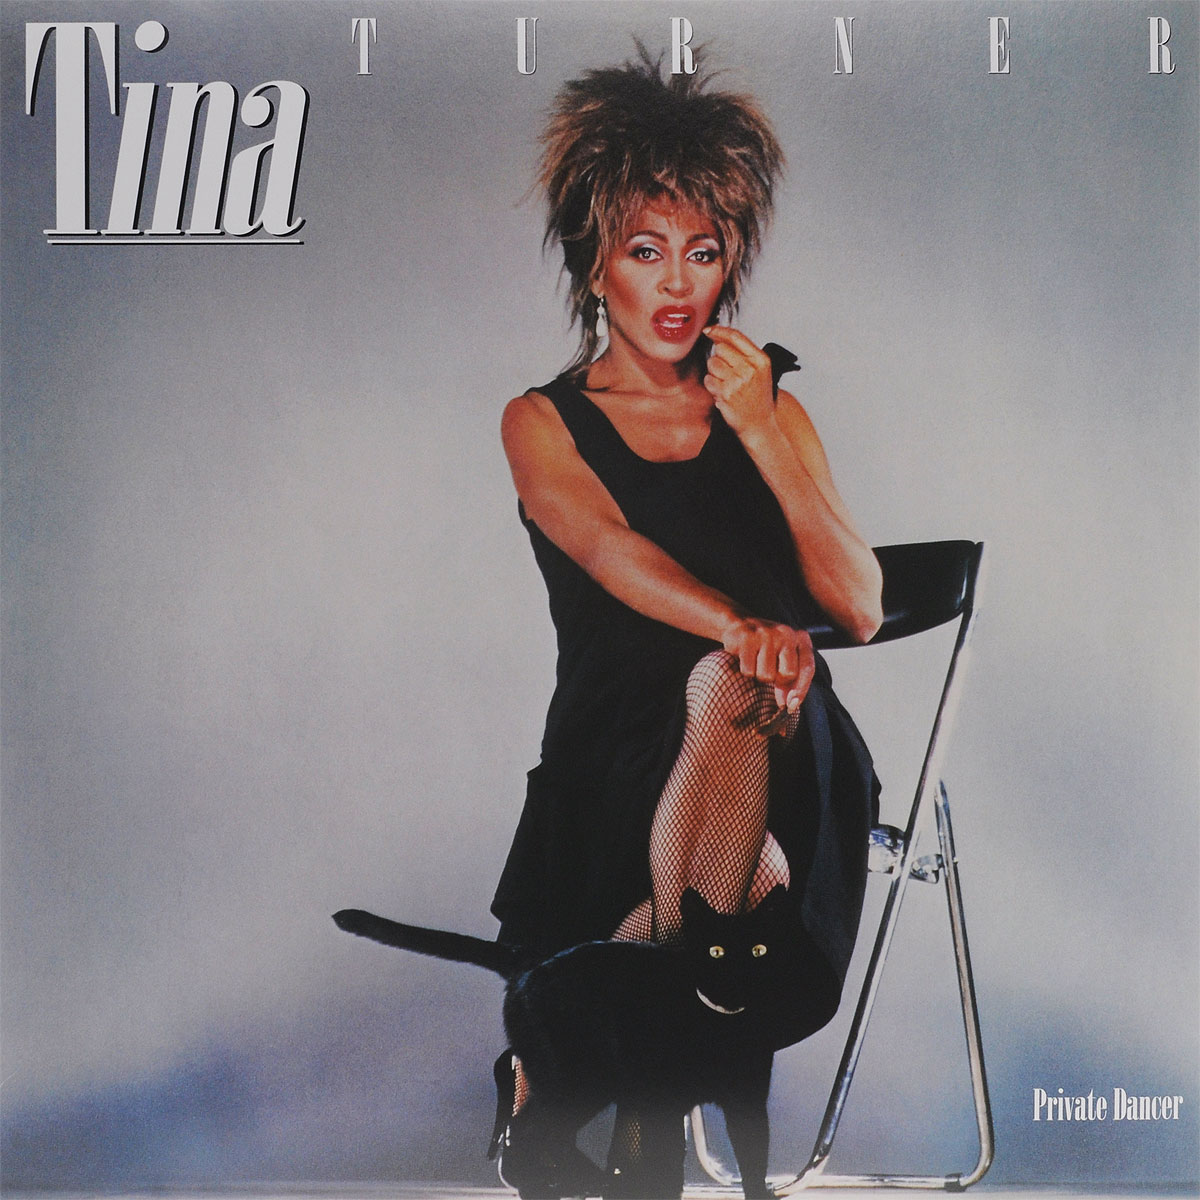 Тина Тернер Tina Turner. Private Dancer (LP) xeltek private seat tqfp64 ta050 b006 burning test